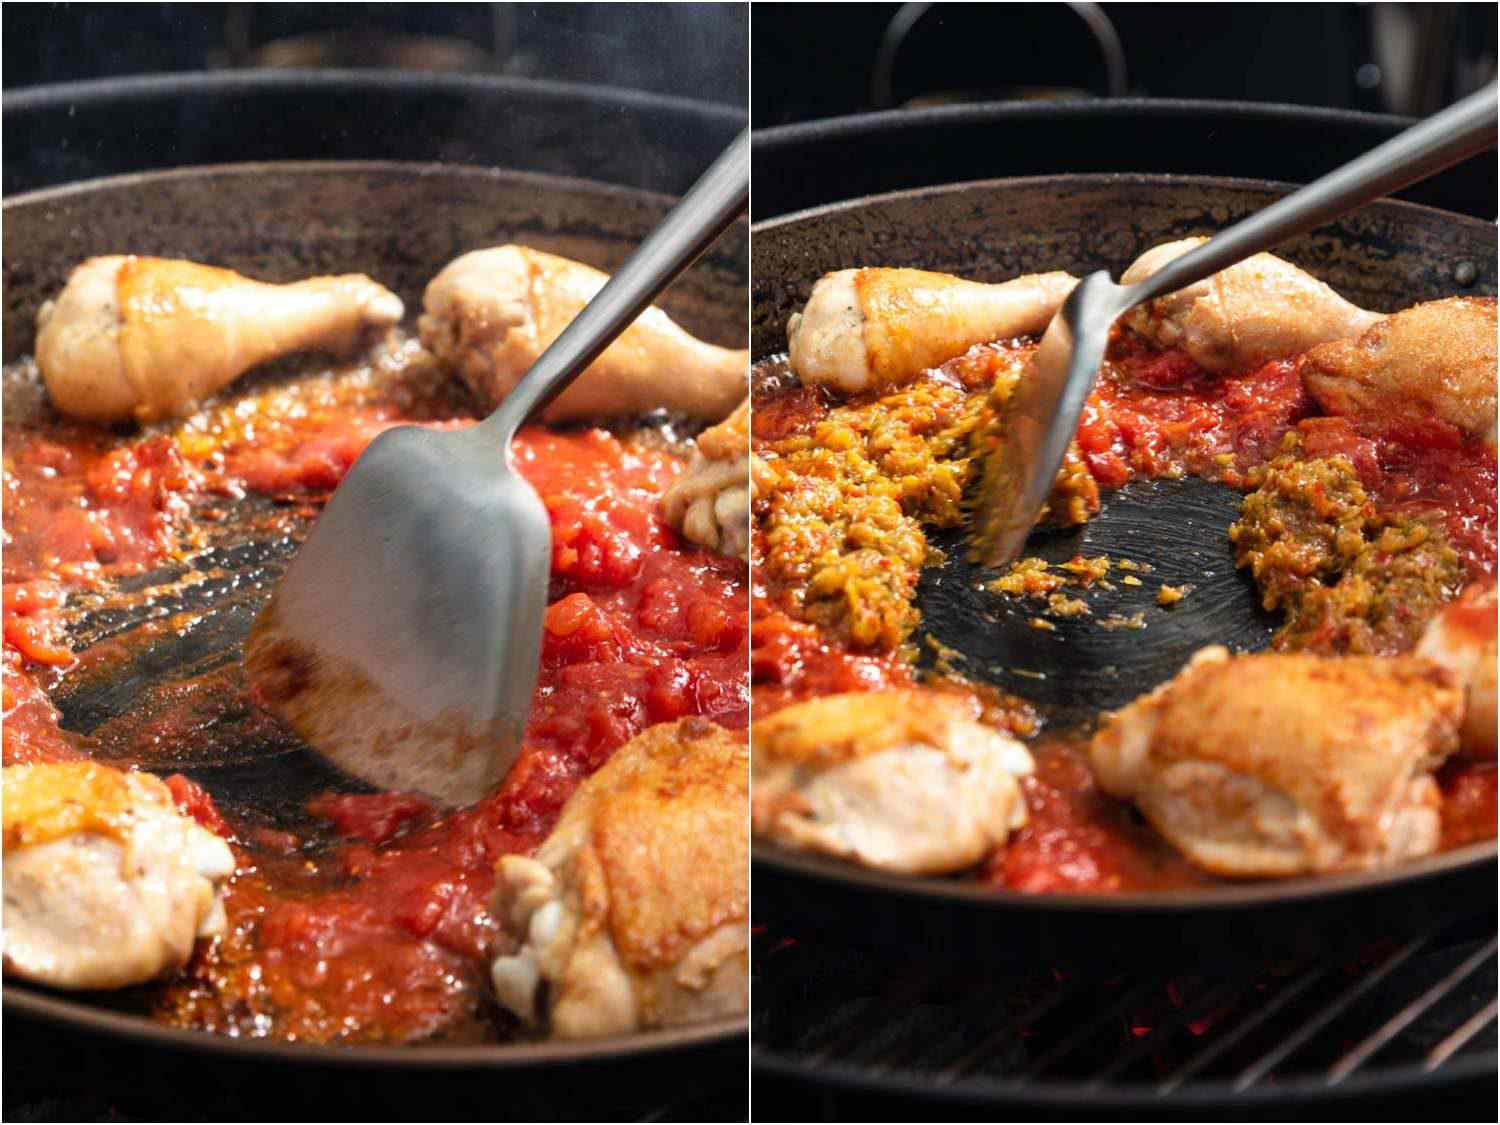 Sauteing tomato sauce, saffron, and paprika in the paella pan, with the chicken pushed off to the side.